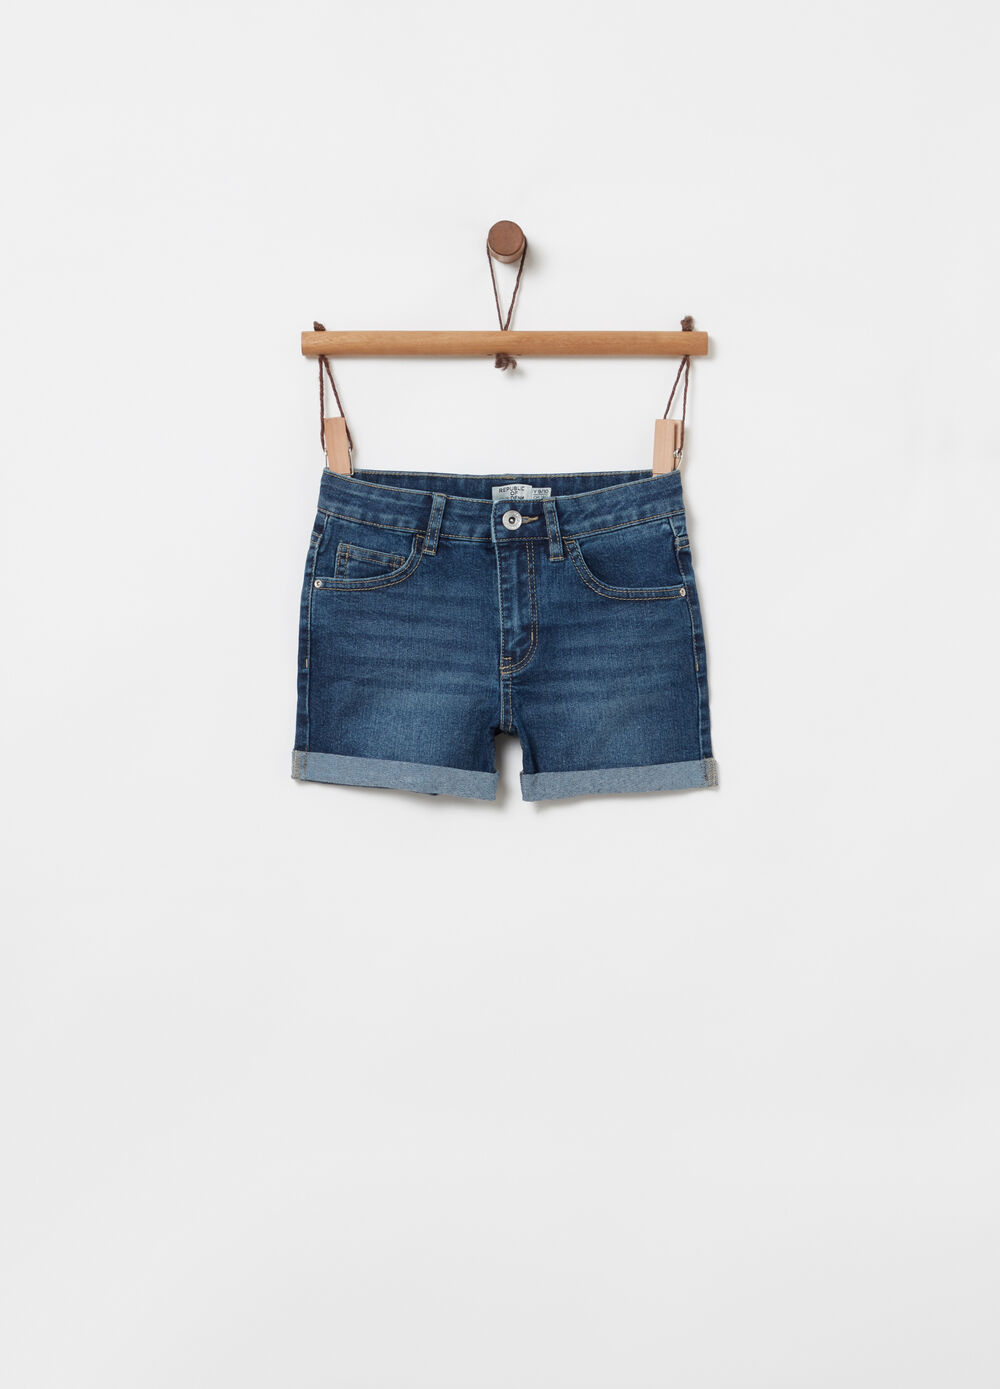 Shorts denim stretch vita elasticata tasche